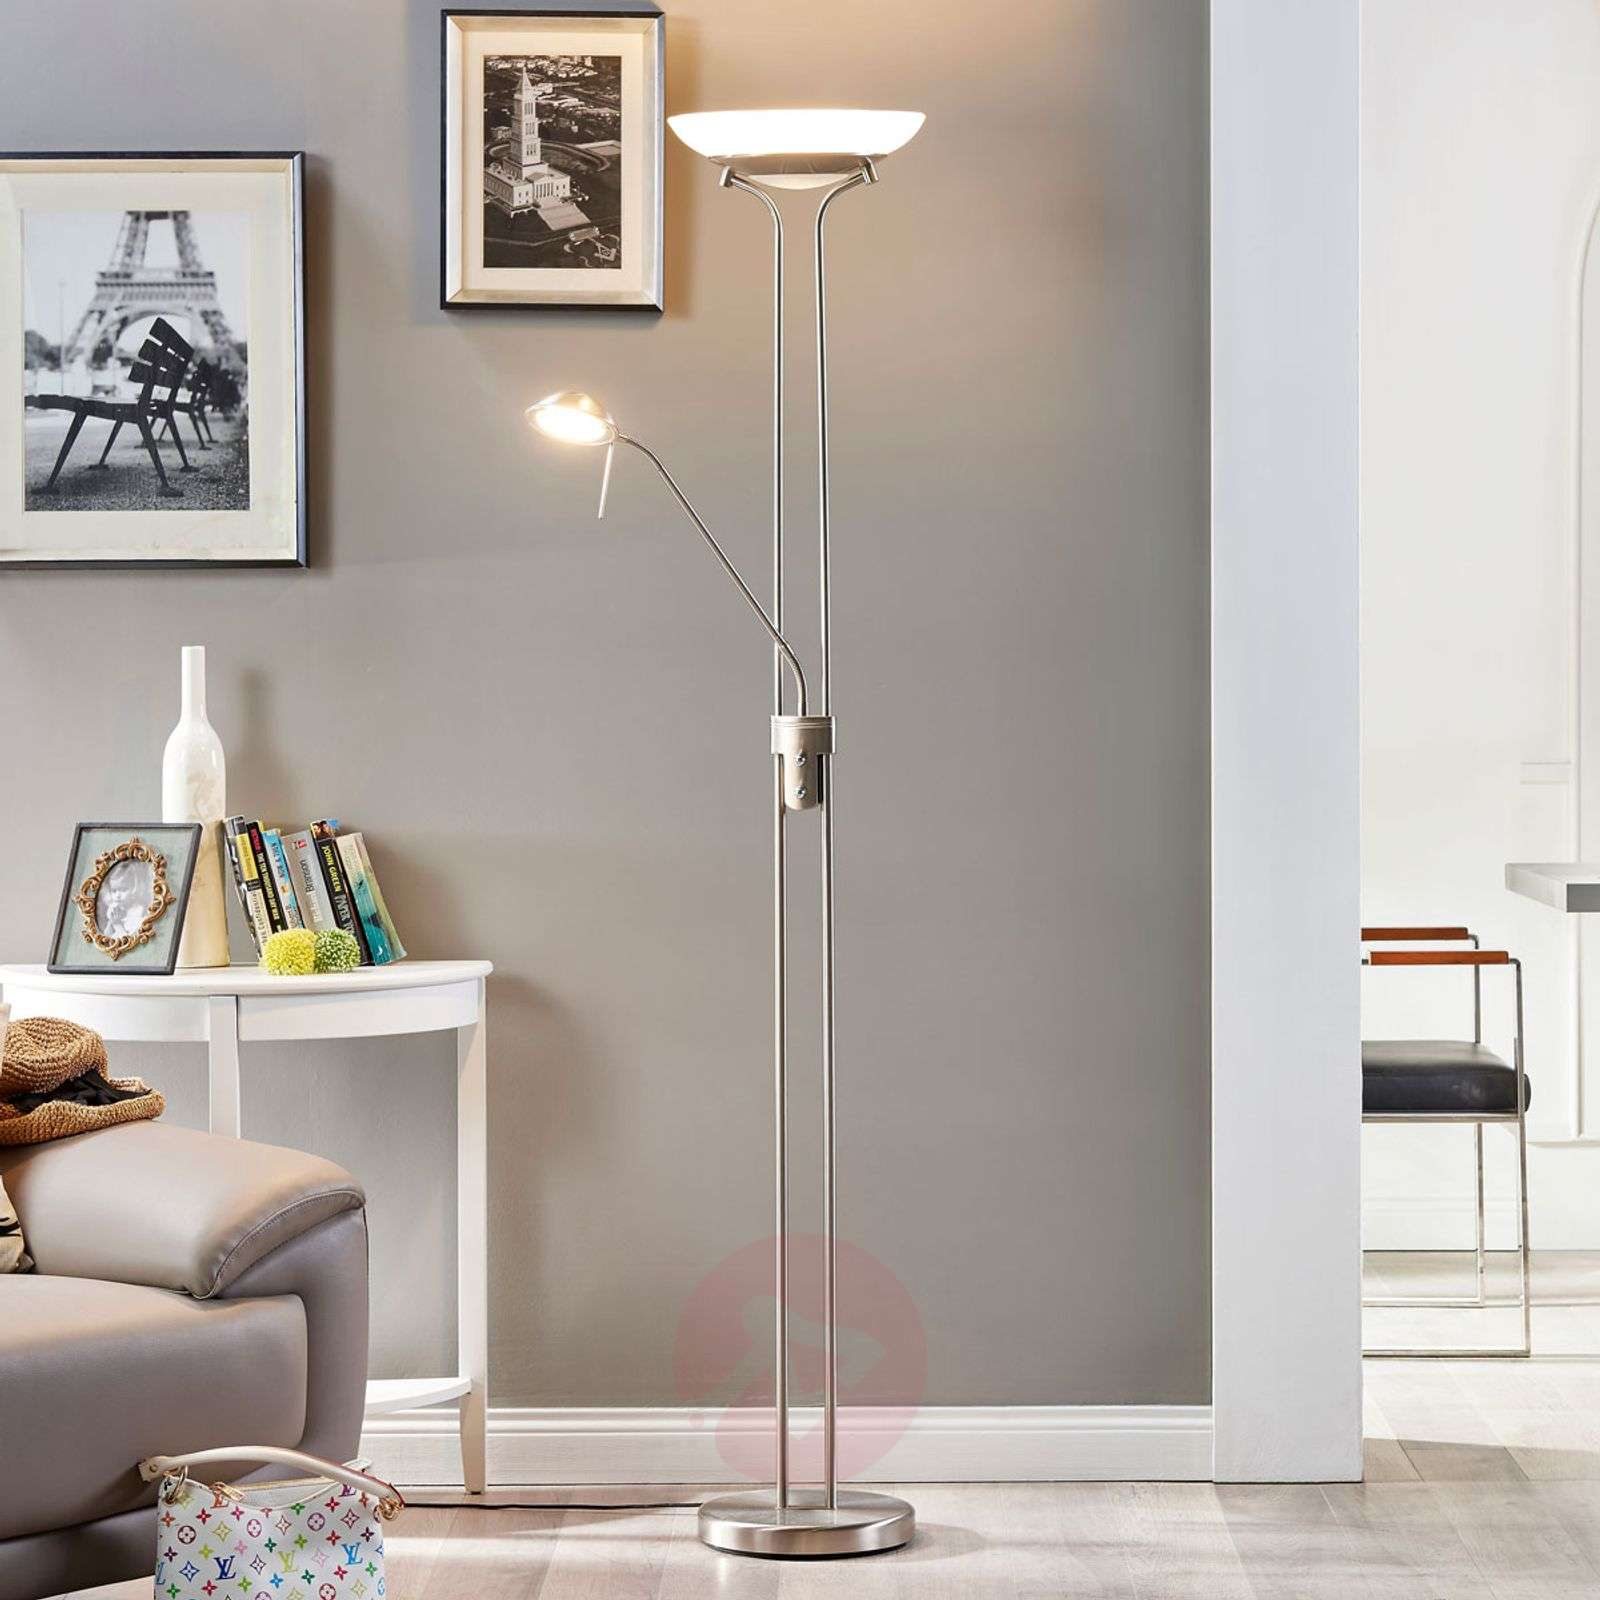 LED uplighter Yveta with a reading lamp-9620910-01